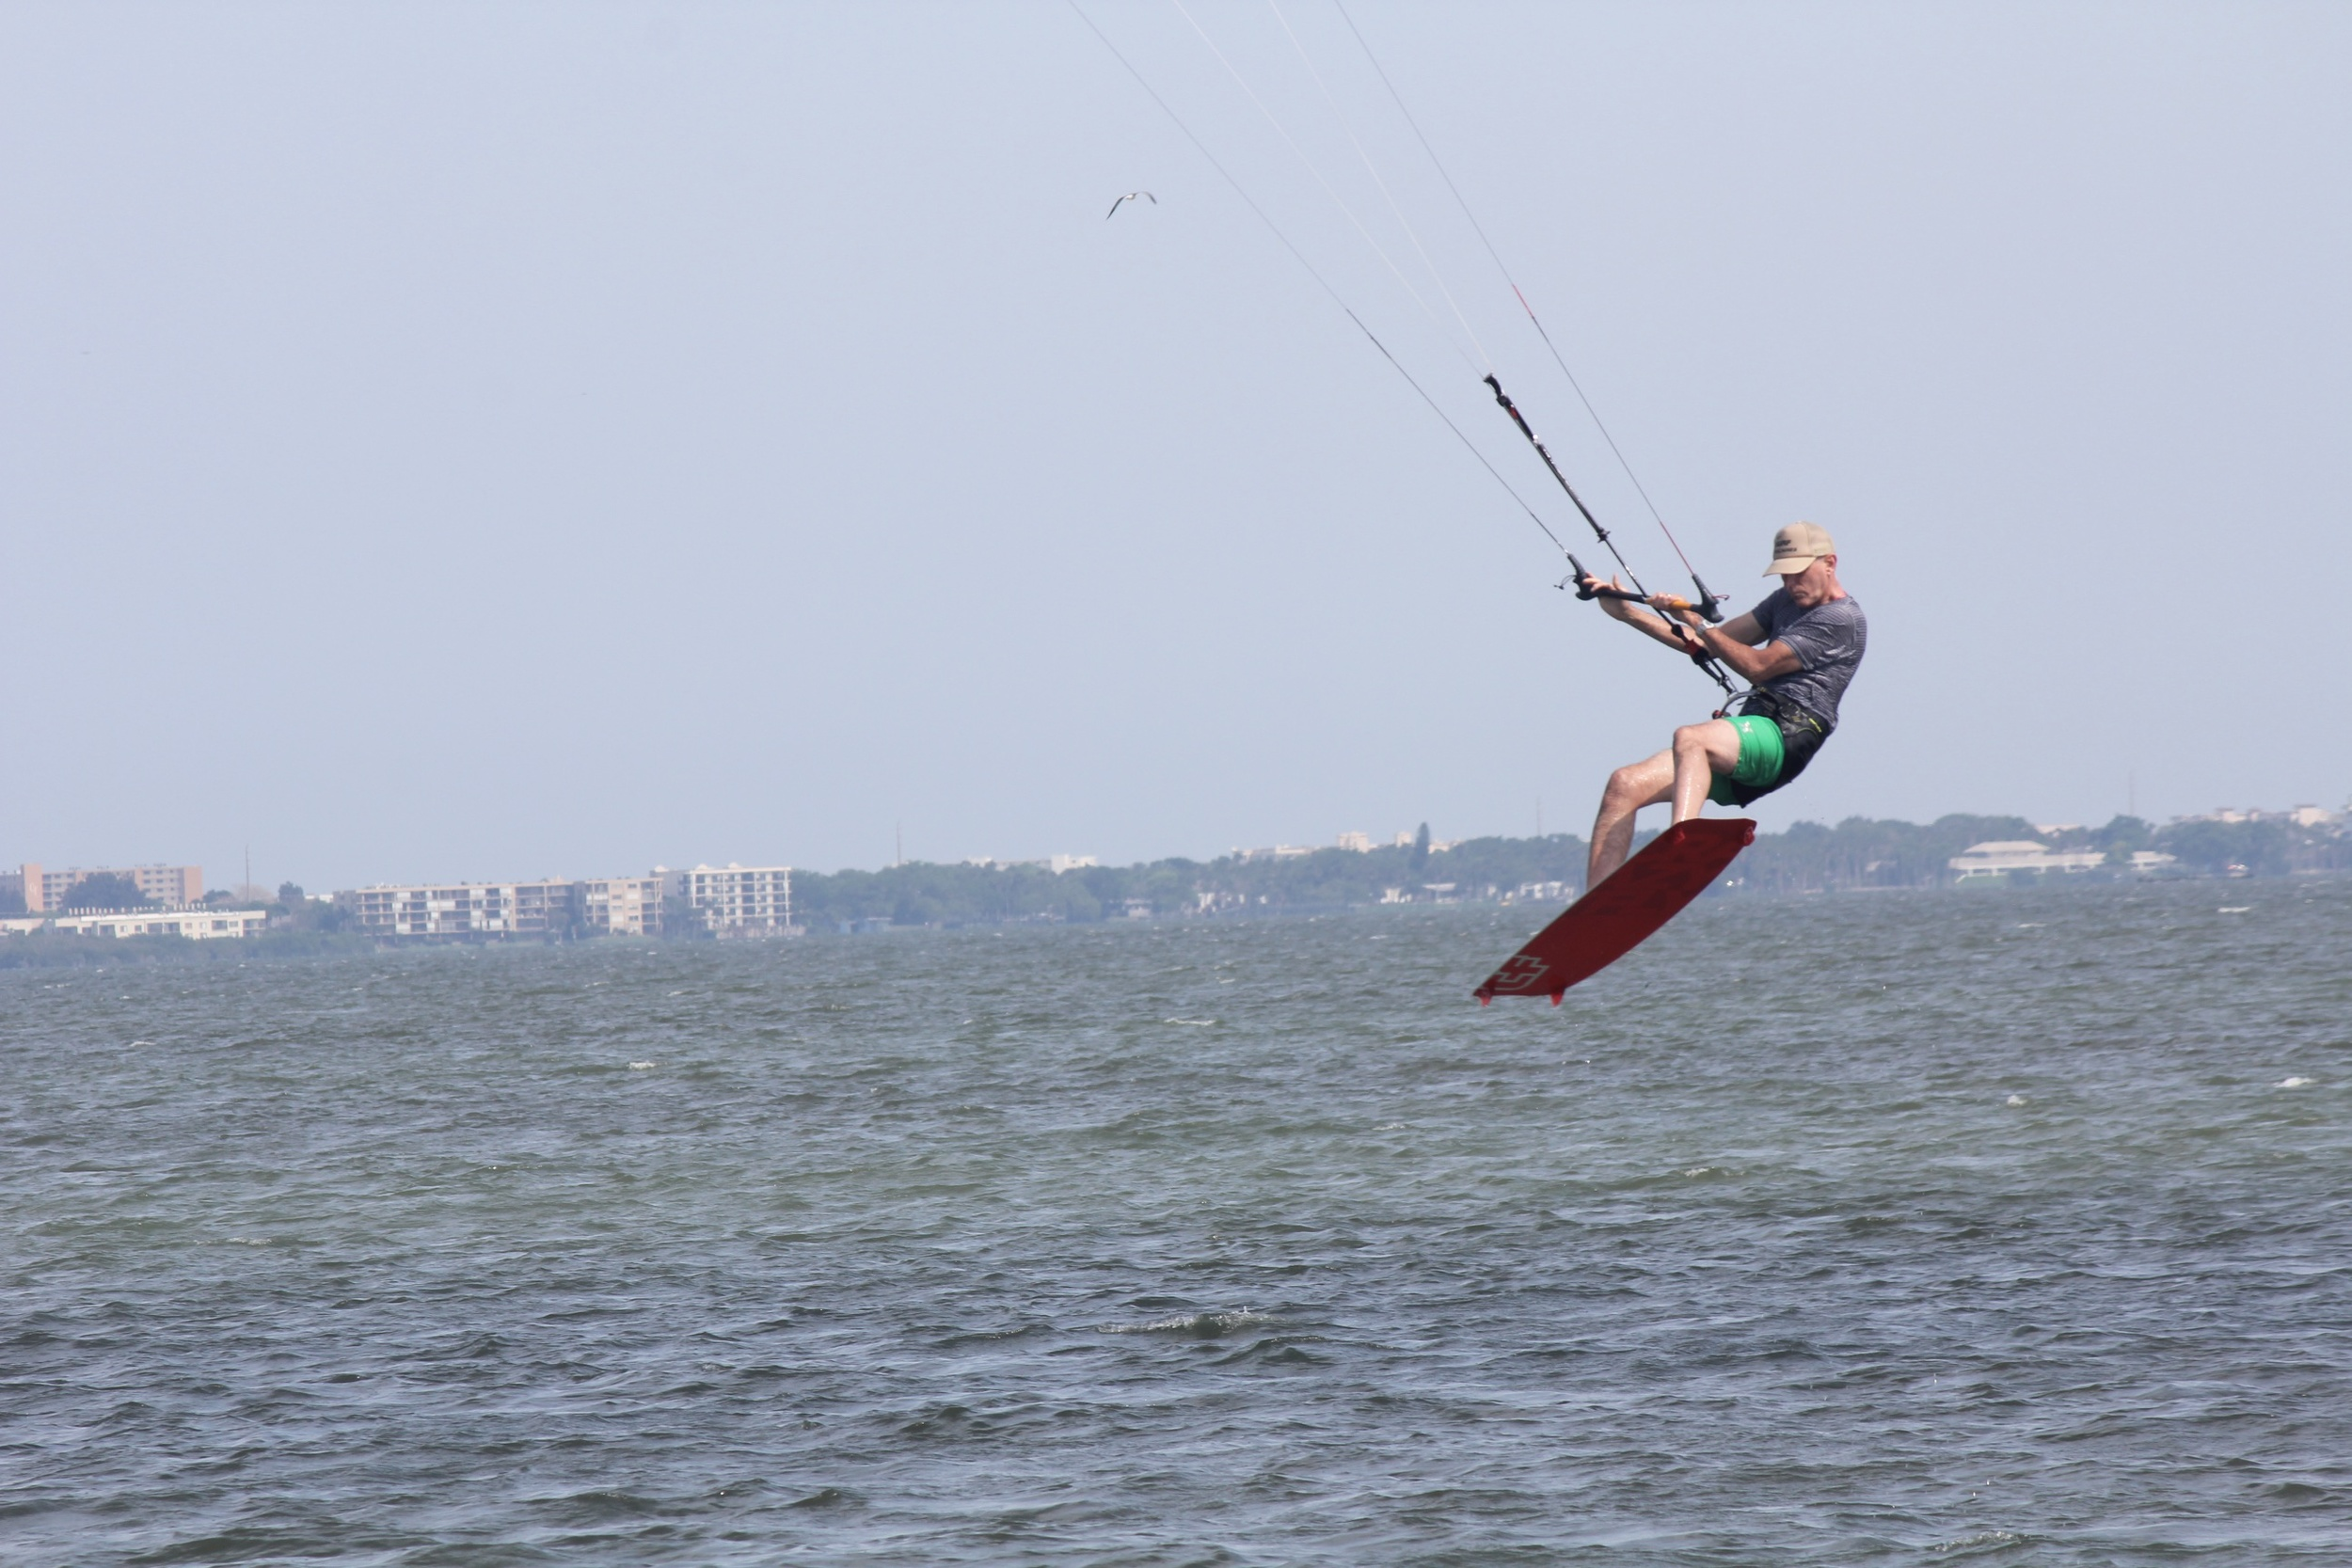 Dave let me take his 3 strut Cabrinha kite for a spin. Nice kite. Didn't even know it was 3 strut until afterwards.